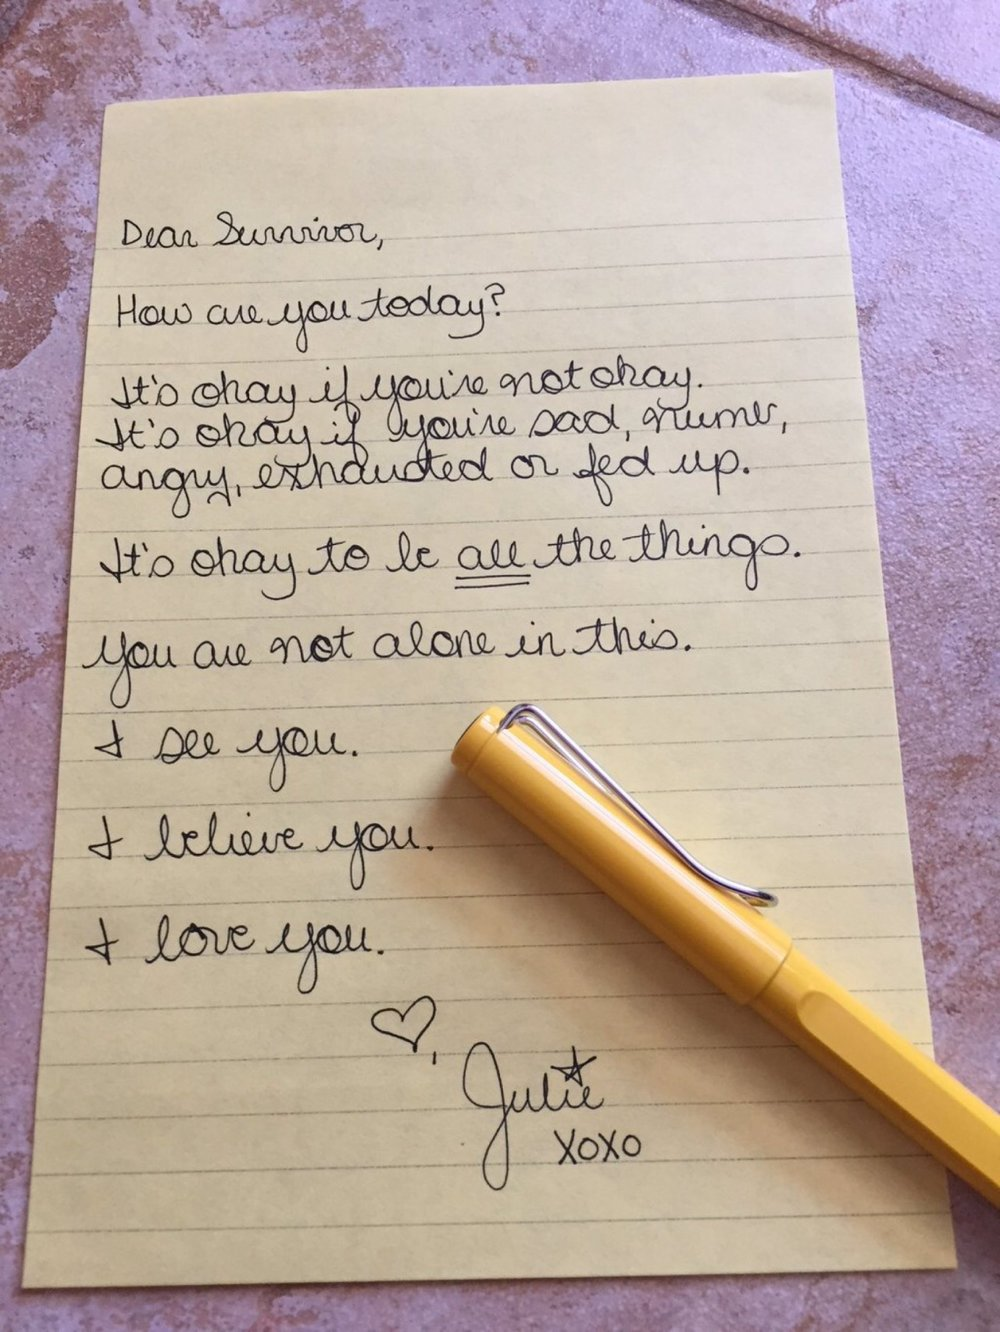 Dear Survivor,  How are you today?  It's okay if you're not okay. It's okay if you're sad, numb, angry, exhausted or fed up.  It's okay to be all the things.  You are not alone in this.  I see you.  I believe you.  I love you.  Love, Julie xoxo